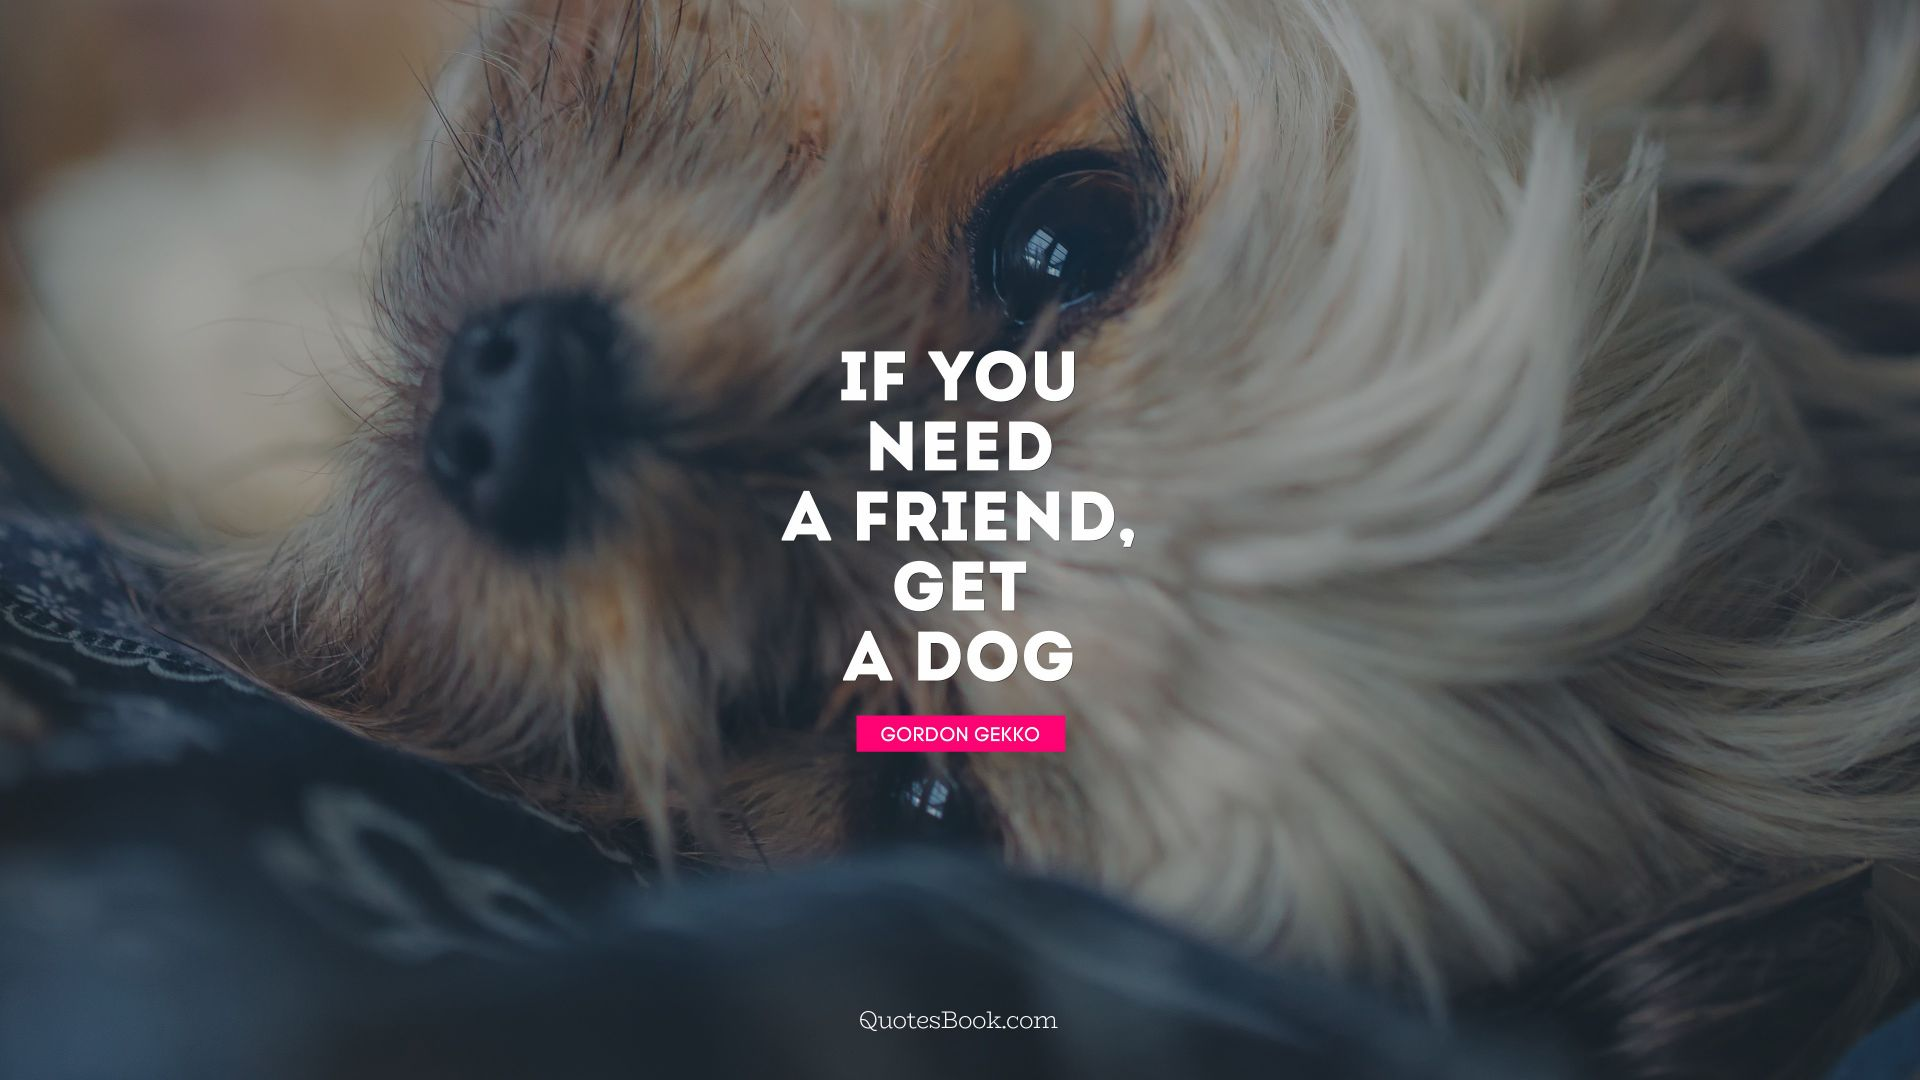 If you need a friend, get a dog. - Quote by Gordon Gekko